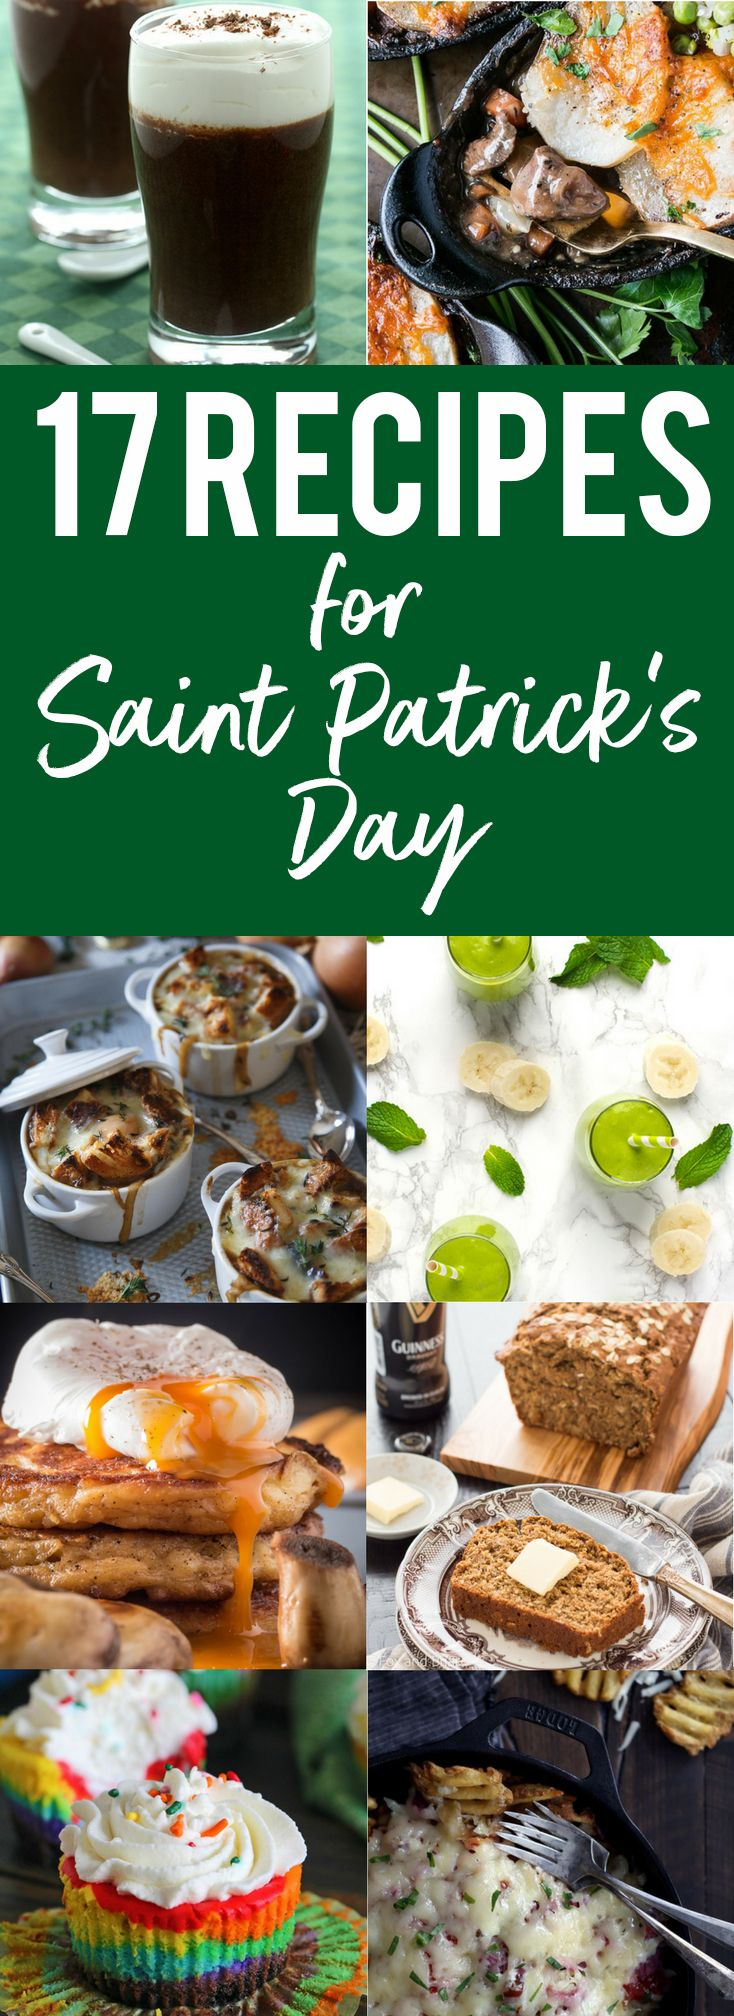 St. Patrick's Day is coming and it's time to get ready to celebrate! I've rounded up the best recipes to make for Saint Patrick's Day.